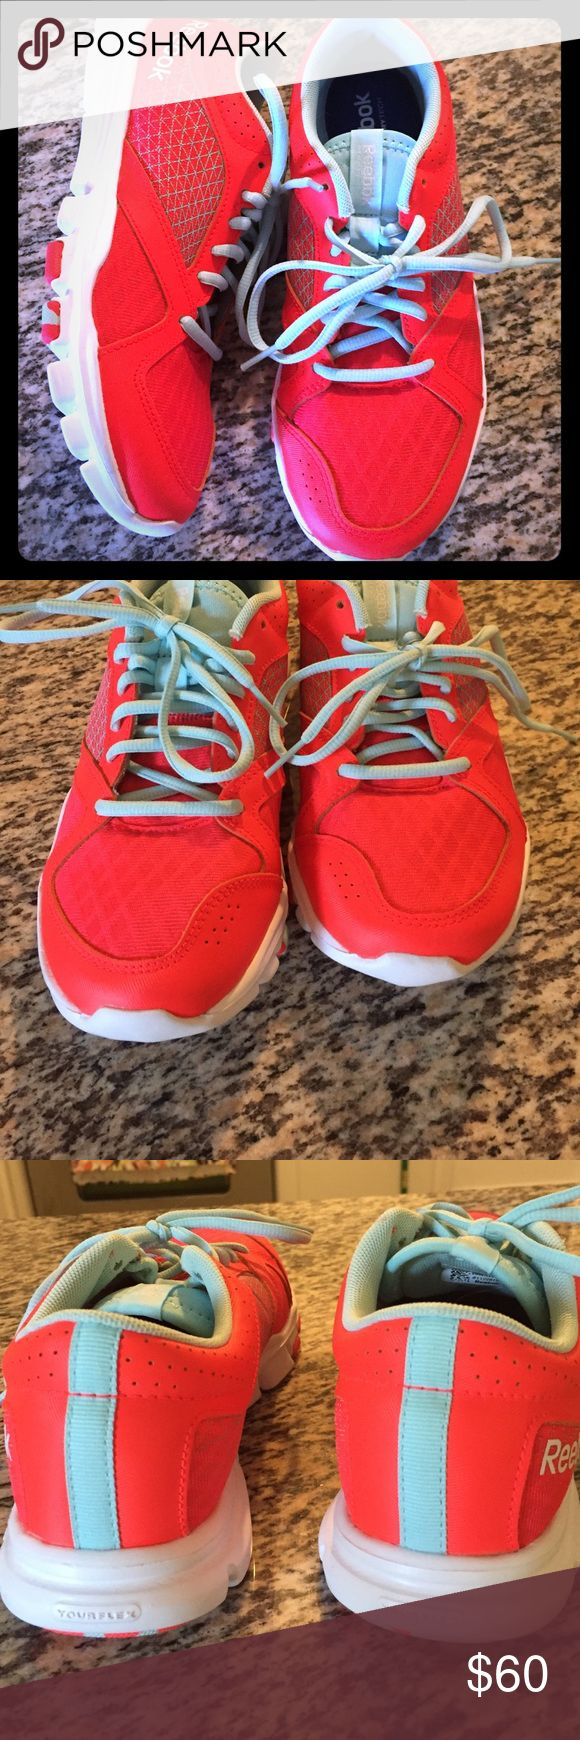 Reebox MemoryTech cross training shoes Bright Orange, lite blue, worn once, perfect condition Reebok Shoes Athletic Shoes